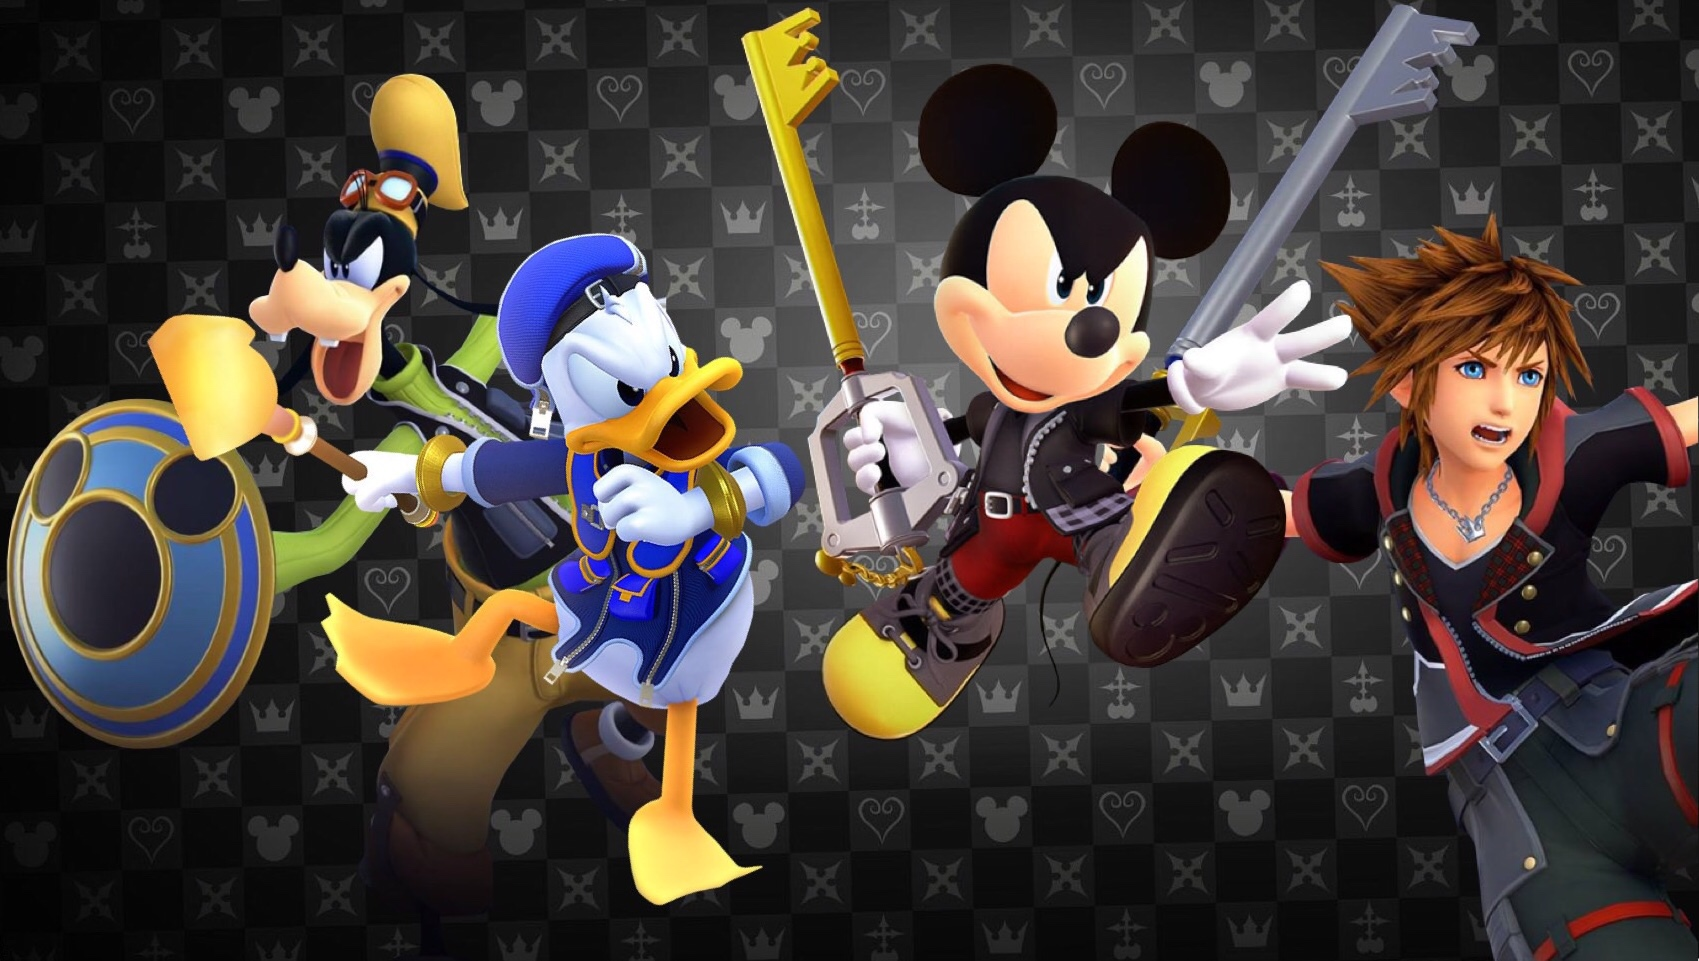 Kingdom Hearts 3 Wallpapers Top Free Kingdom Hearts 3